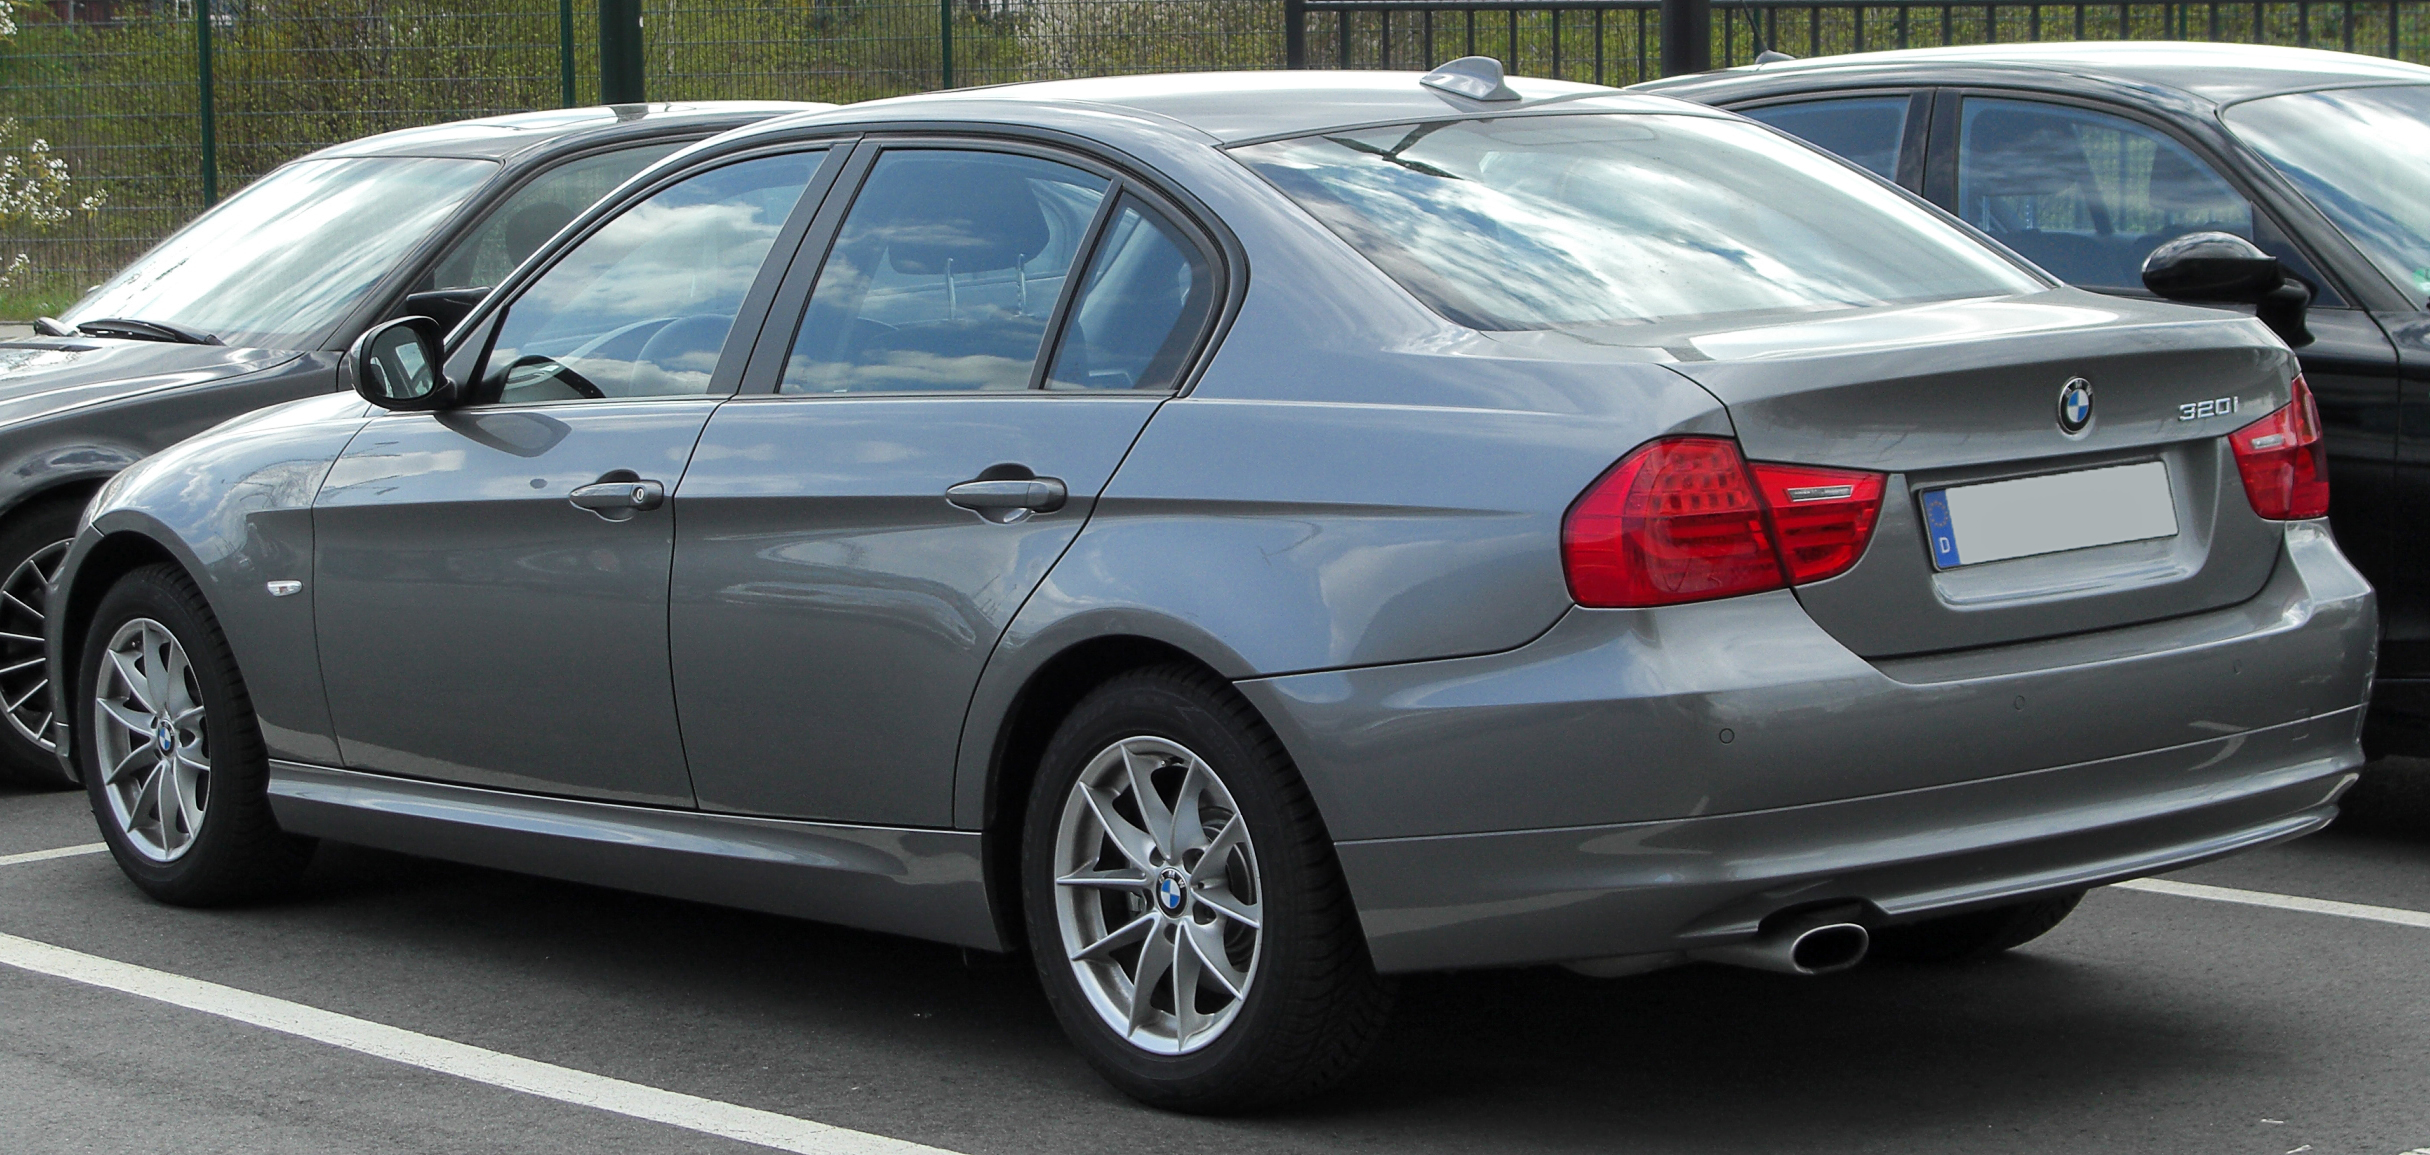 File Bmw 320i E90 Facelift Rear 20100410 Jpg Wikimedia Commons